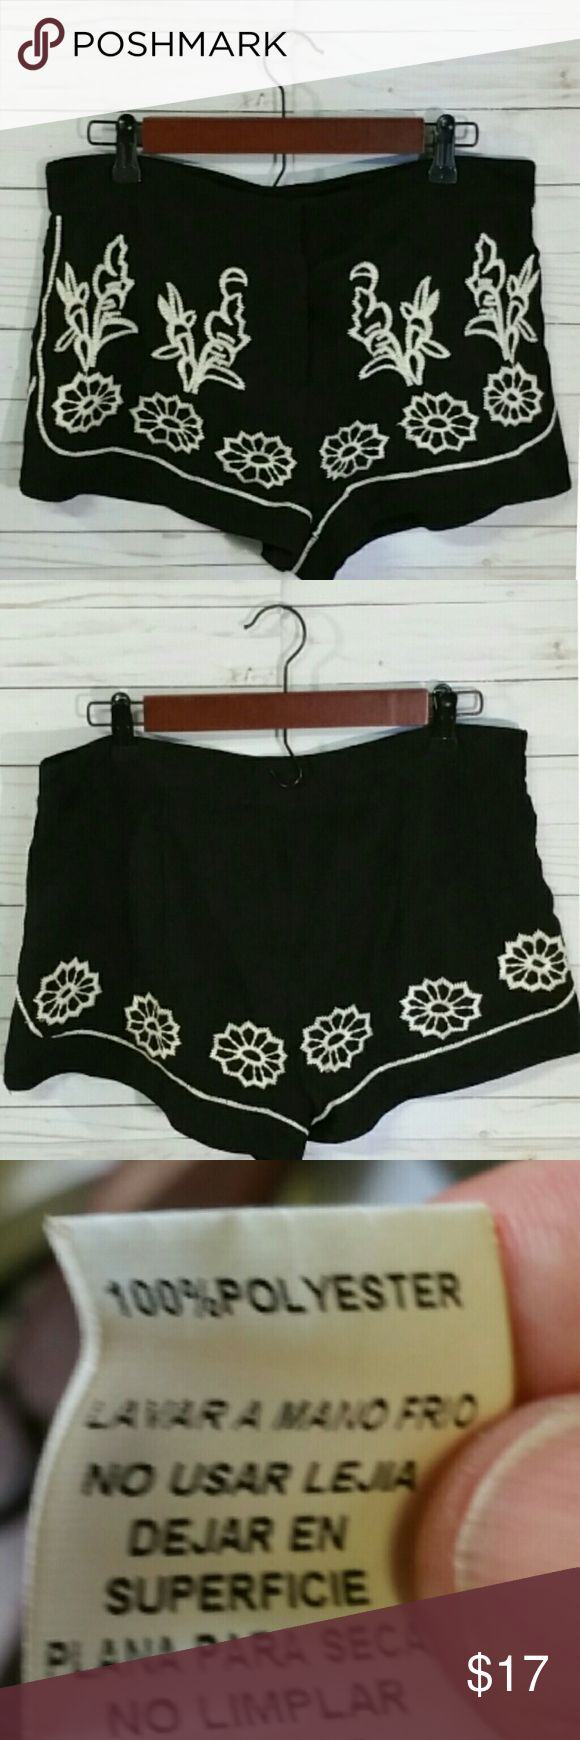 Tinley shorts, black with off white embroidery Black with off white embroidery  Zip front Size medium 32 waist 2 inseam All measurements are approximate   I offer a bundle discount check out my other listings !   Thanks for looking! Tinley Shorts